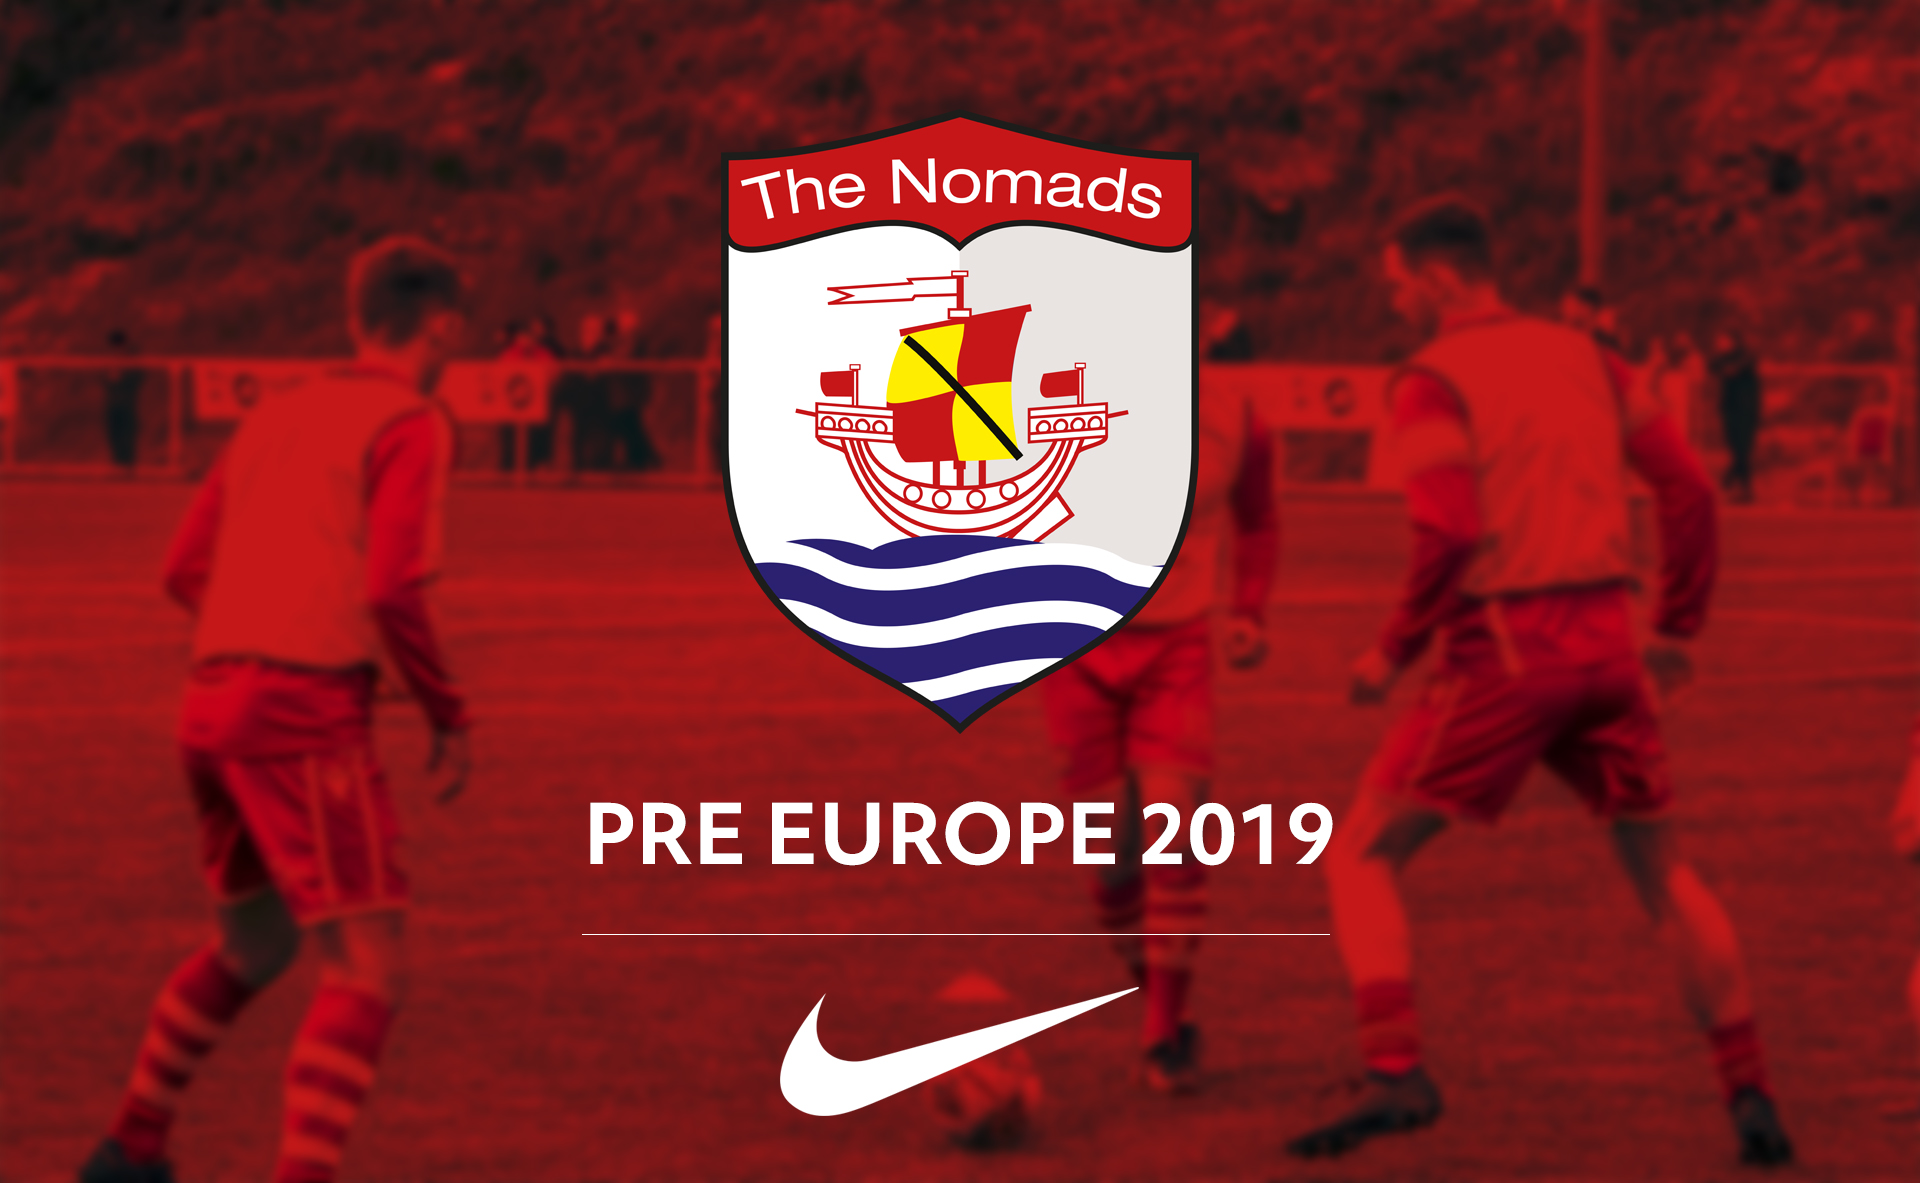 Connah's Quay Nomads' Pre Europe Fixtures 2019